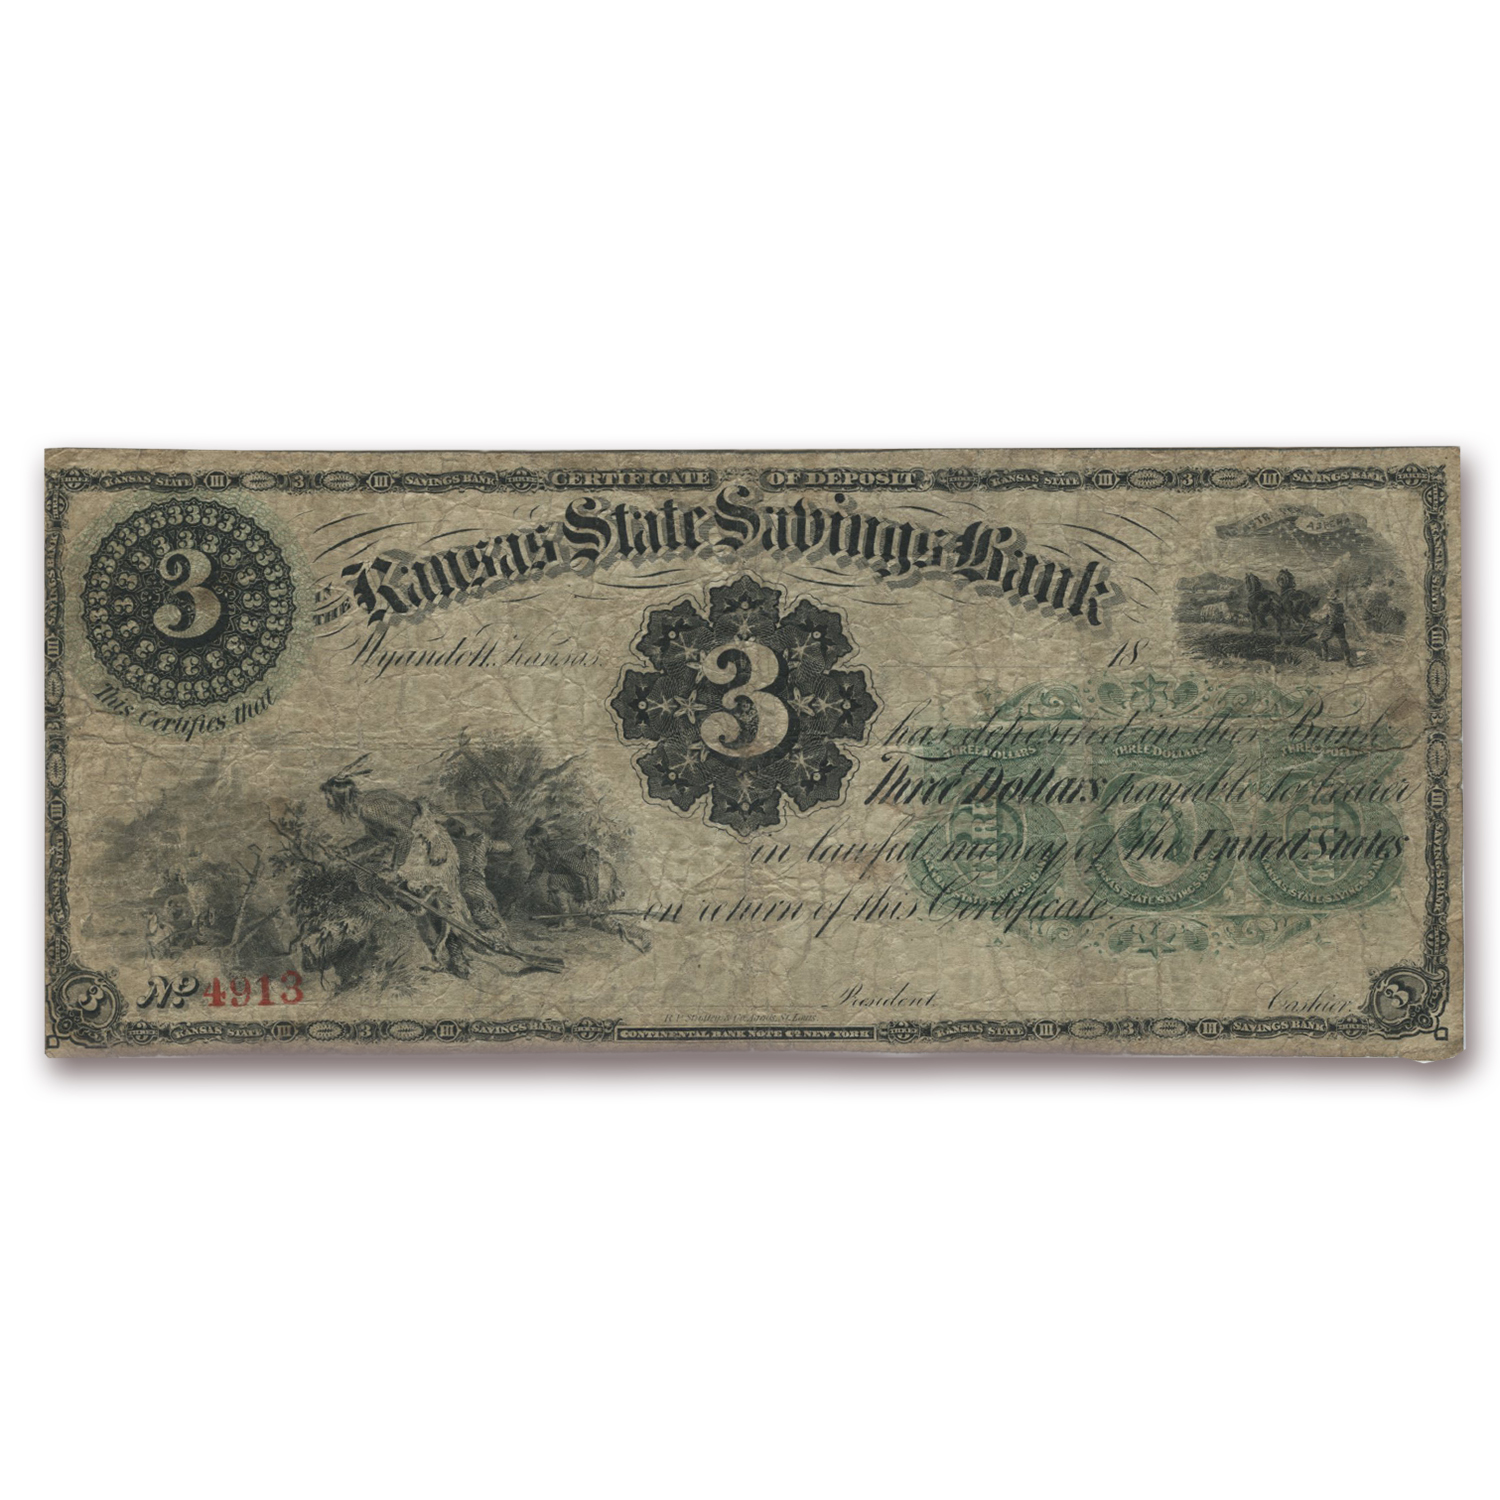 18__ $3.00 Kansas State Savings Bank, Wyandotte, KS Cert Deposit